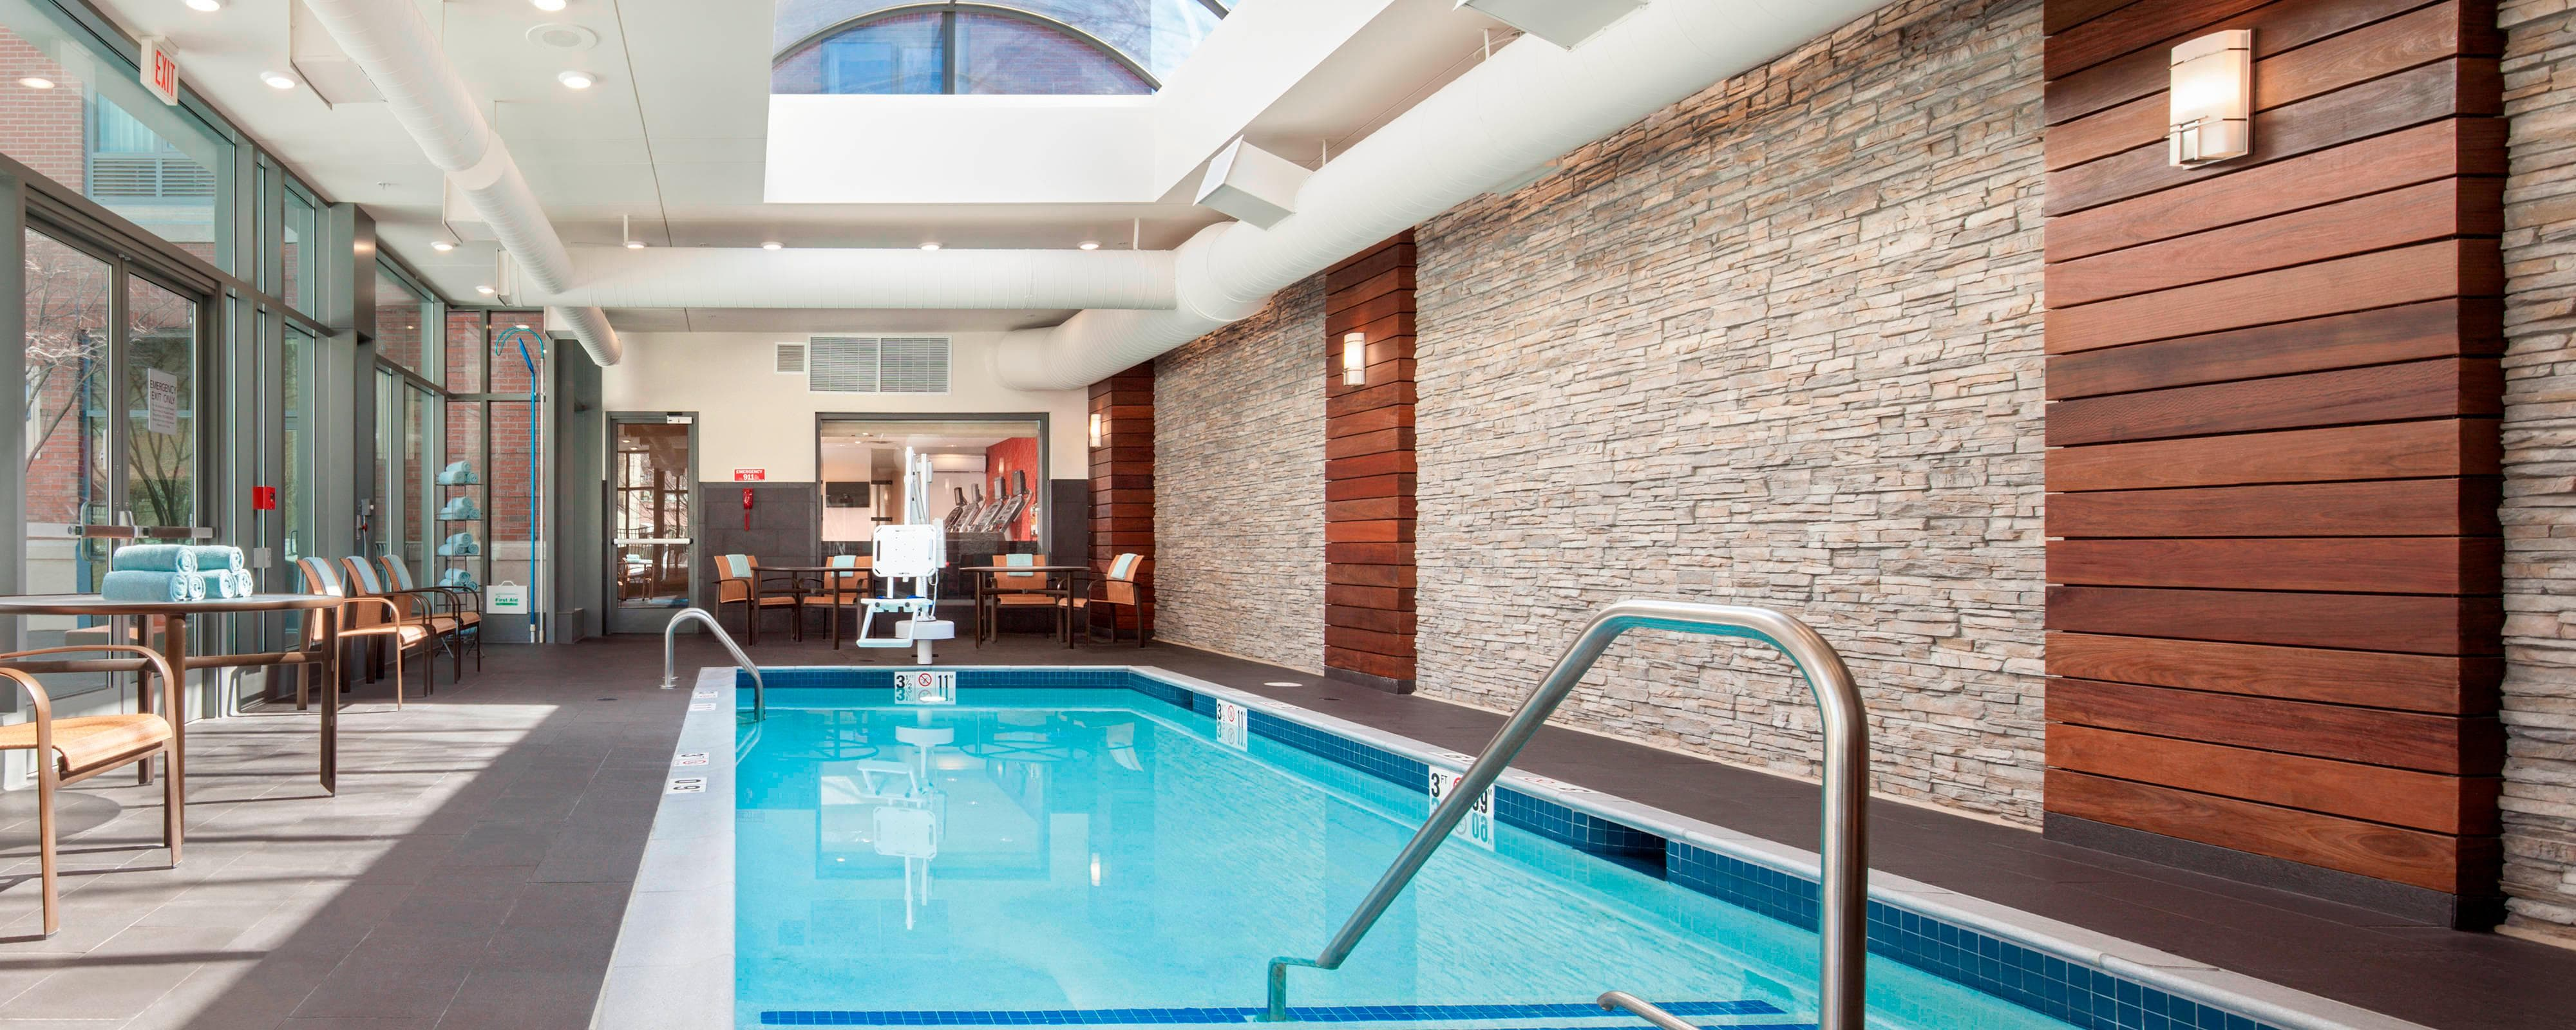 Brookline hotel with indoor pool